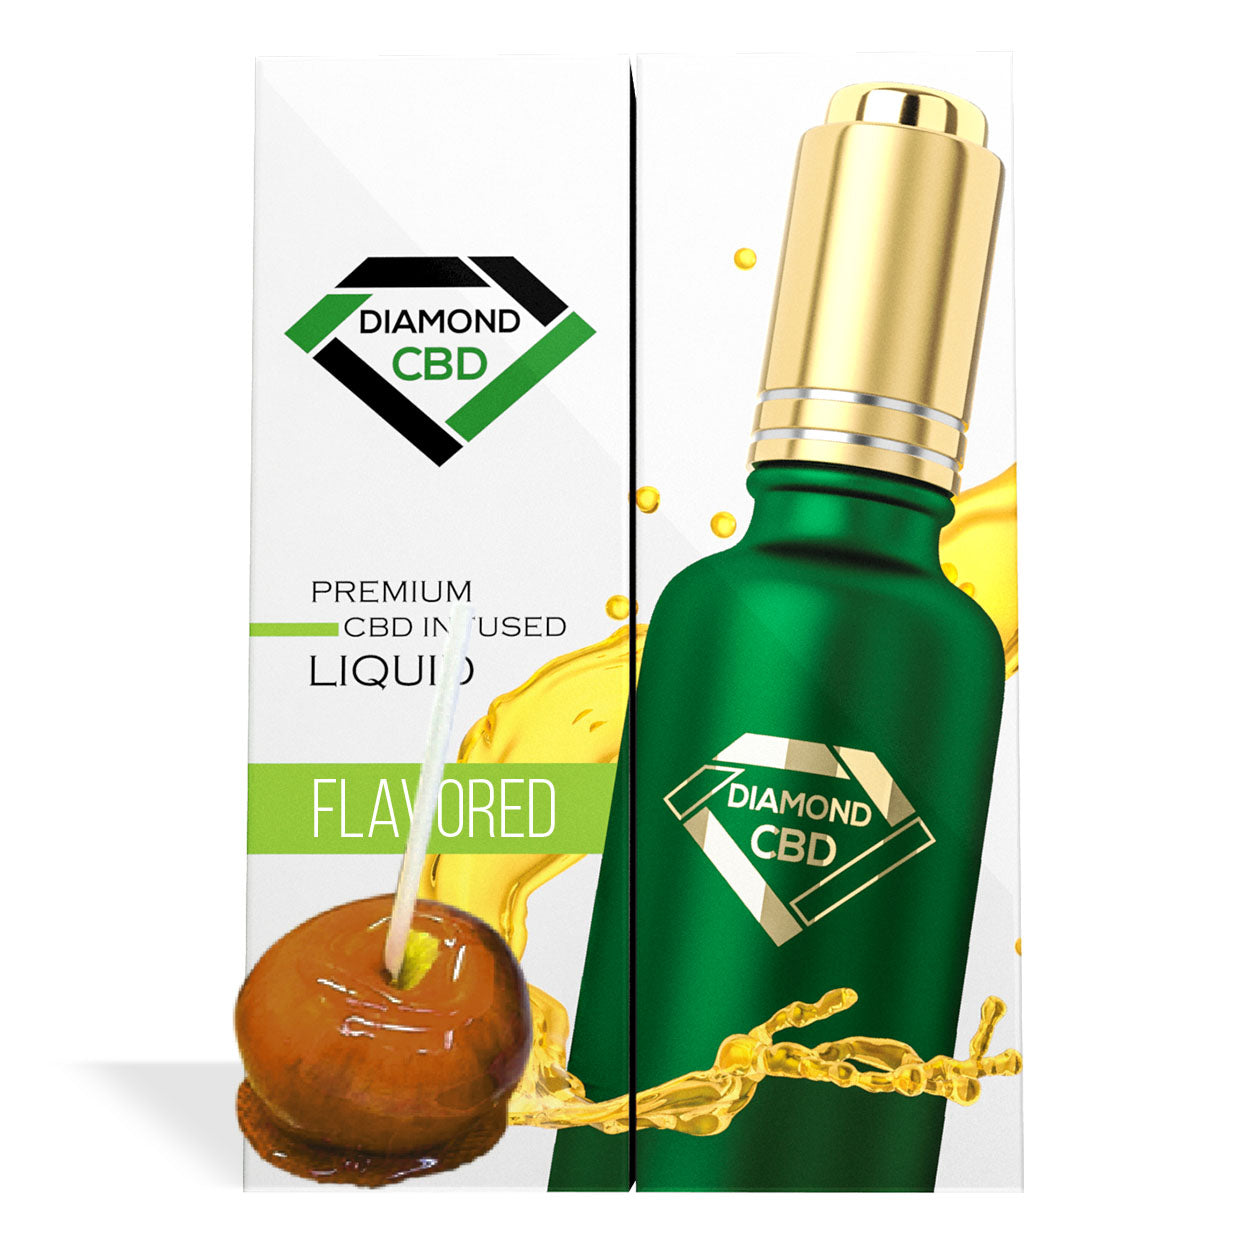 Caramel Apple Flavor Diamond CBD Oil - My CBD Mall